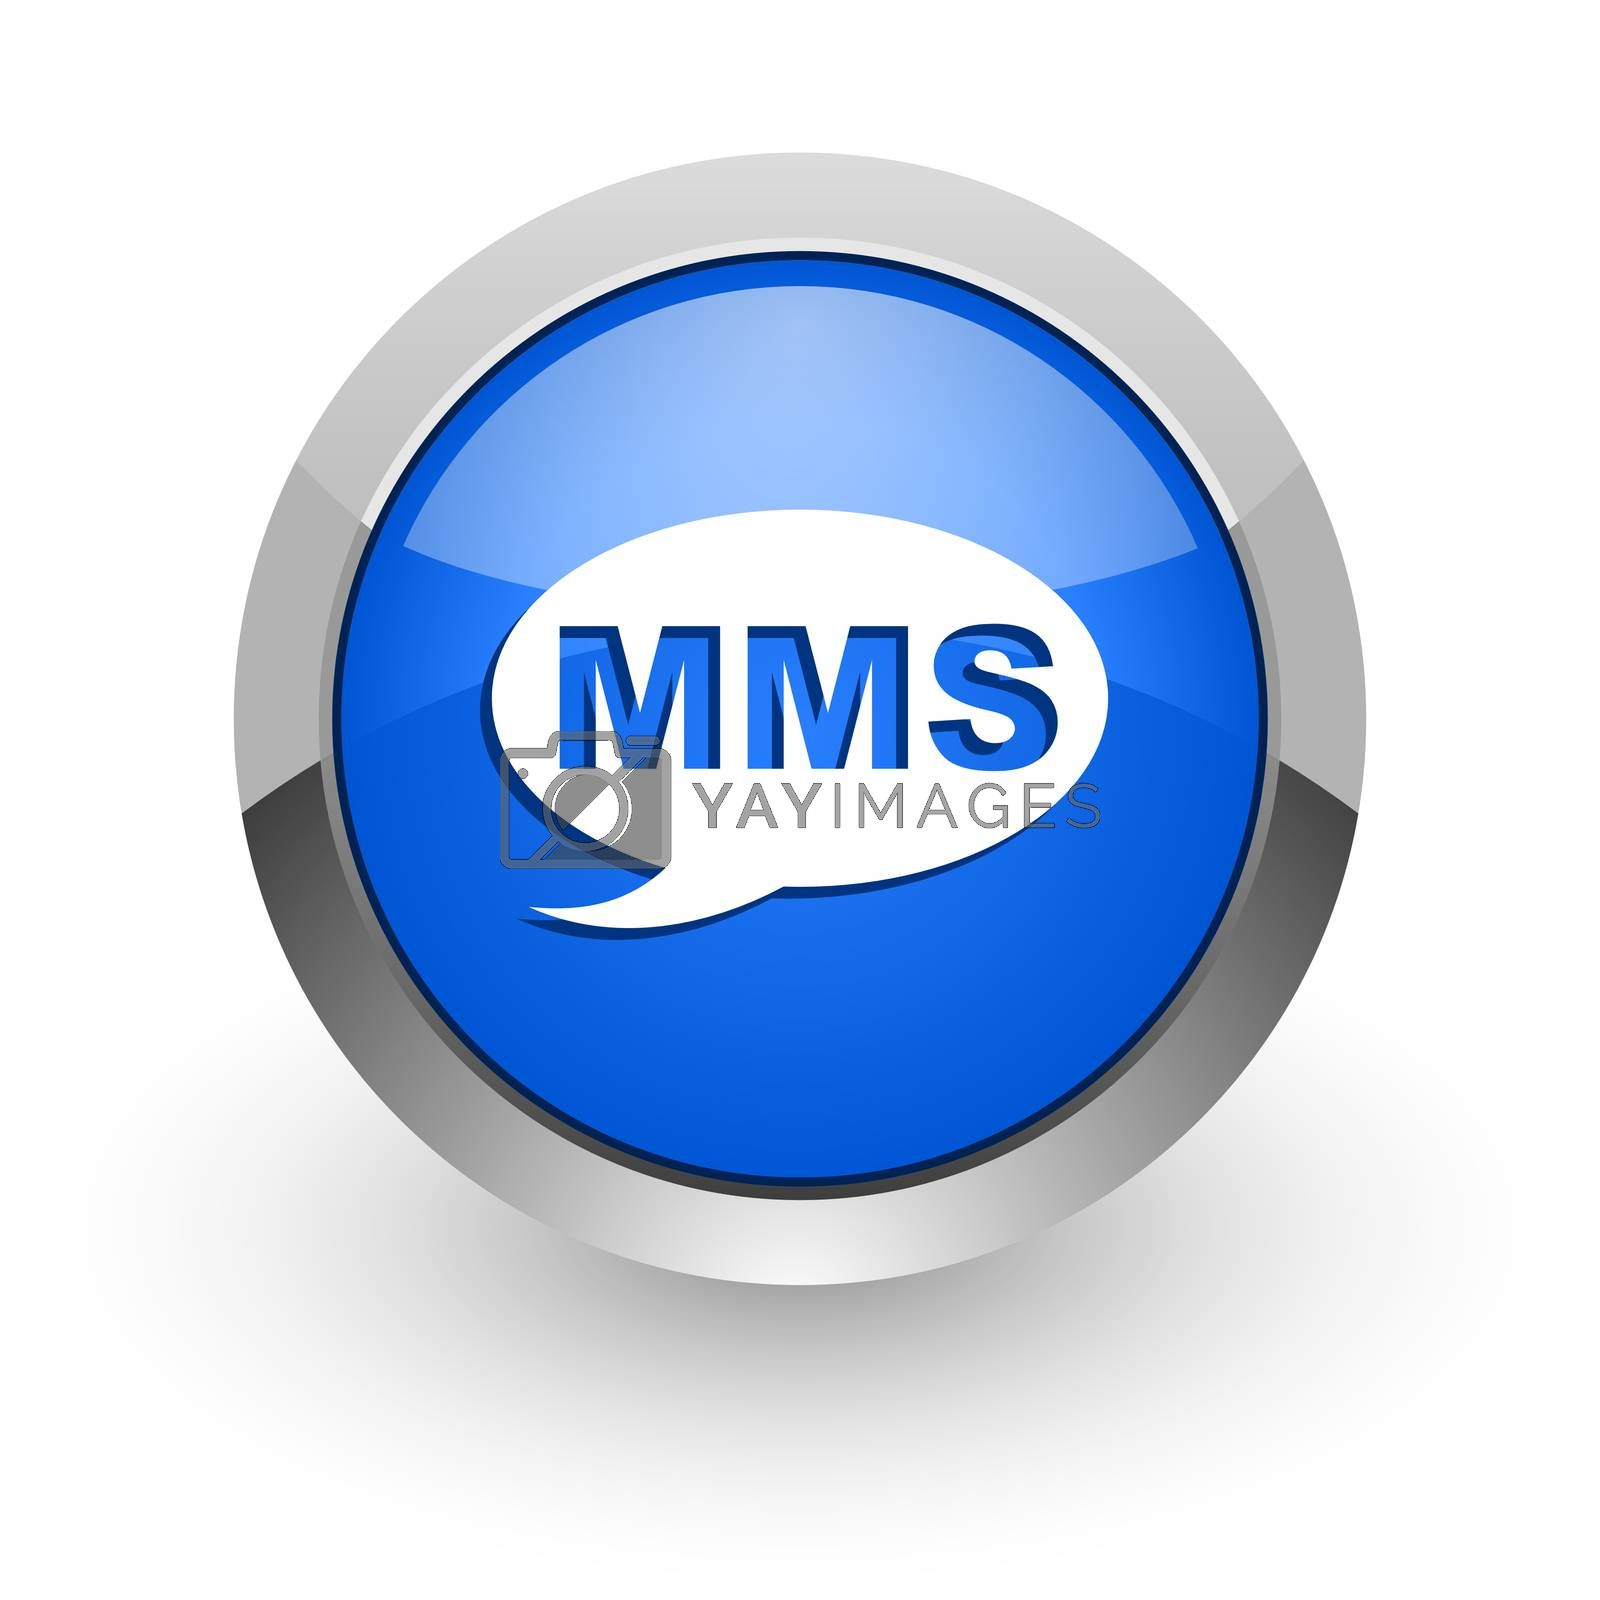 Royalty free image of mms blue glossy web icon by alexwhite